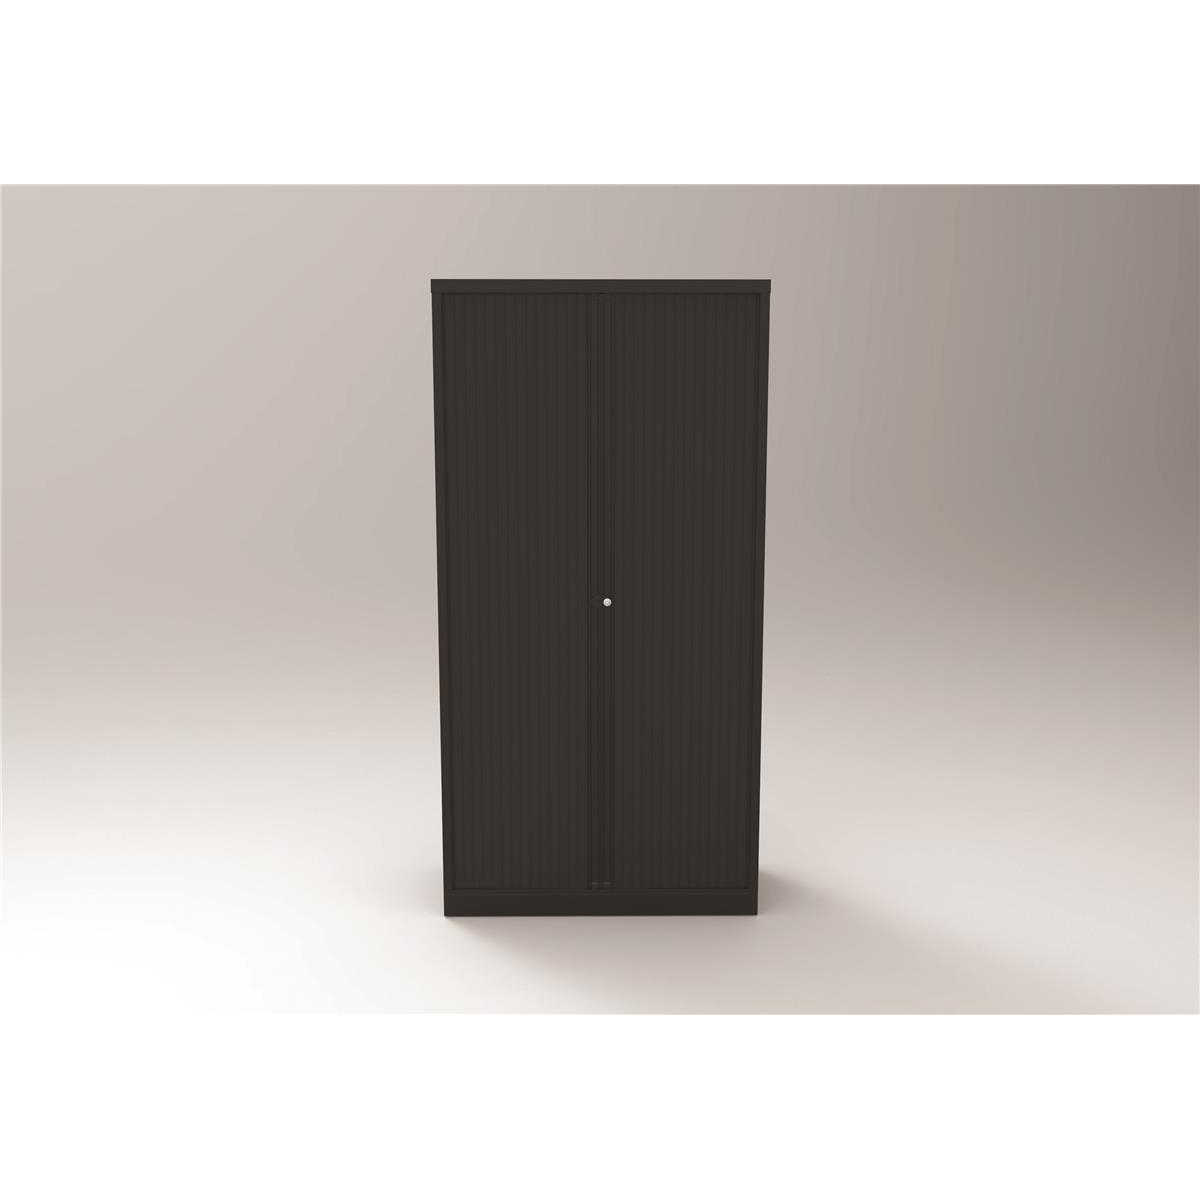 Trexus by Bisley Side Opening Tambour Door Cupboard 1000x470x1970-1985mm Black/Black Ref YETB1019.5-av1